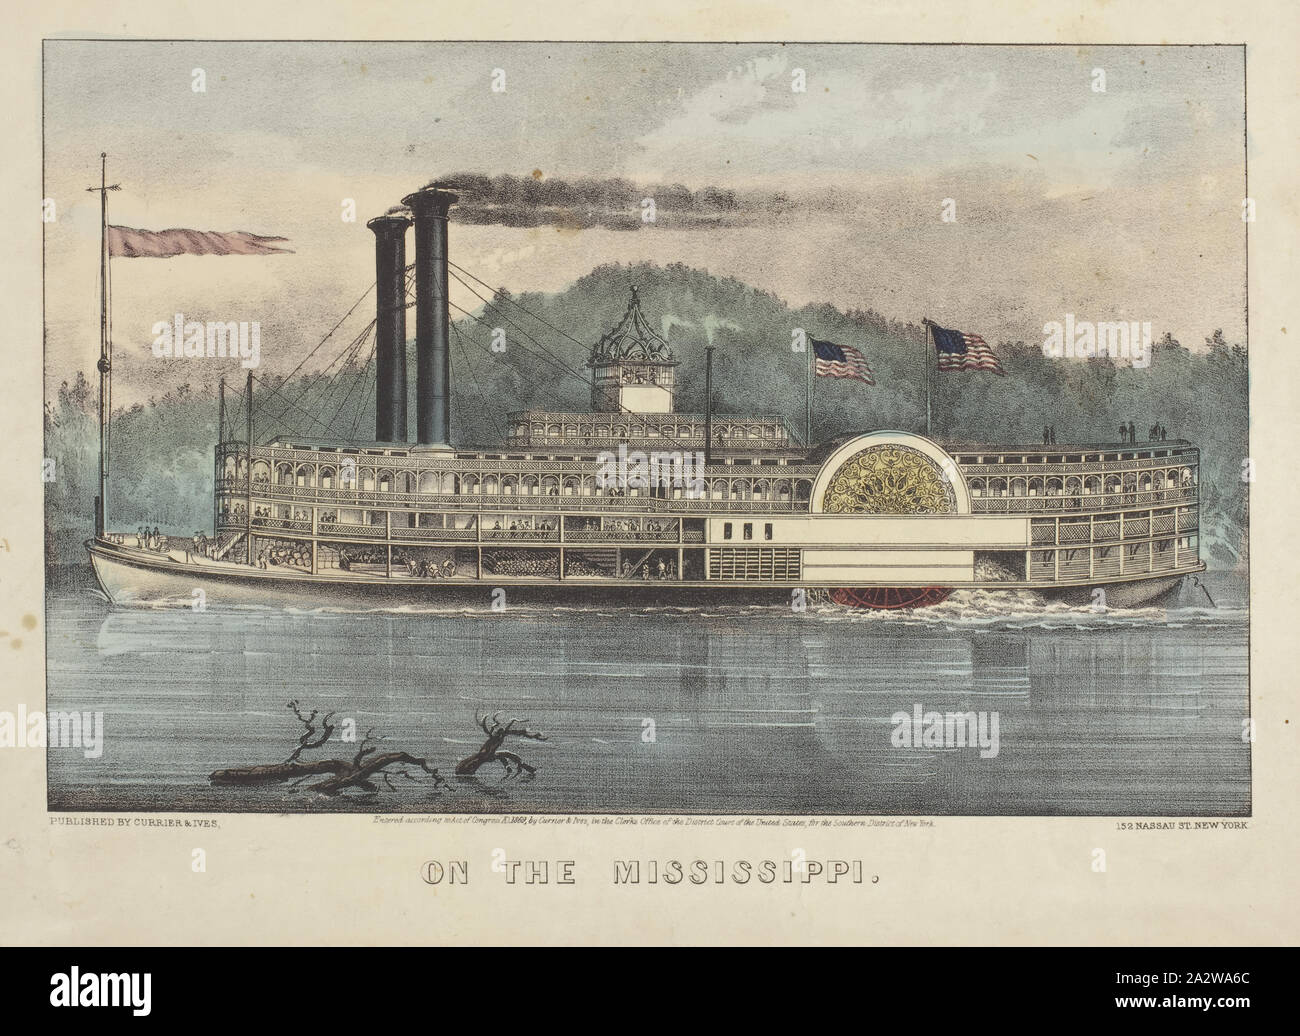 On the Mississippi, Nathaniel Currier (American, 1813-1888), James Merritt Ives (American, 1824-1895), 1869, hand-colored lithograph, 8 x 12-5/8 in. (image) 10-1/4 x 14-1/8 in. (sheet Stock Photo